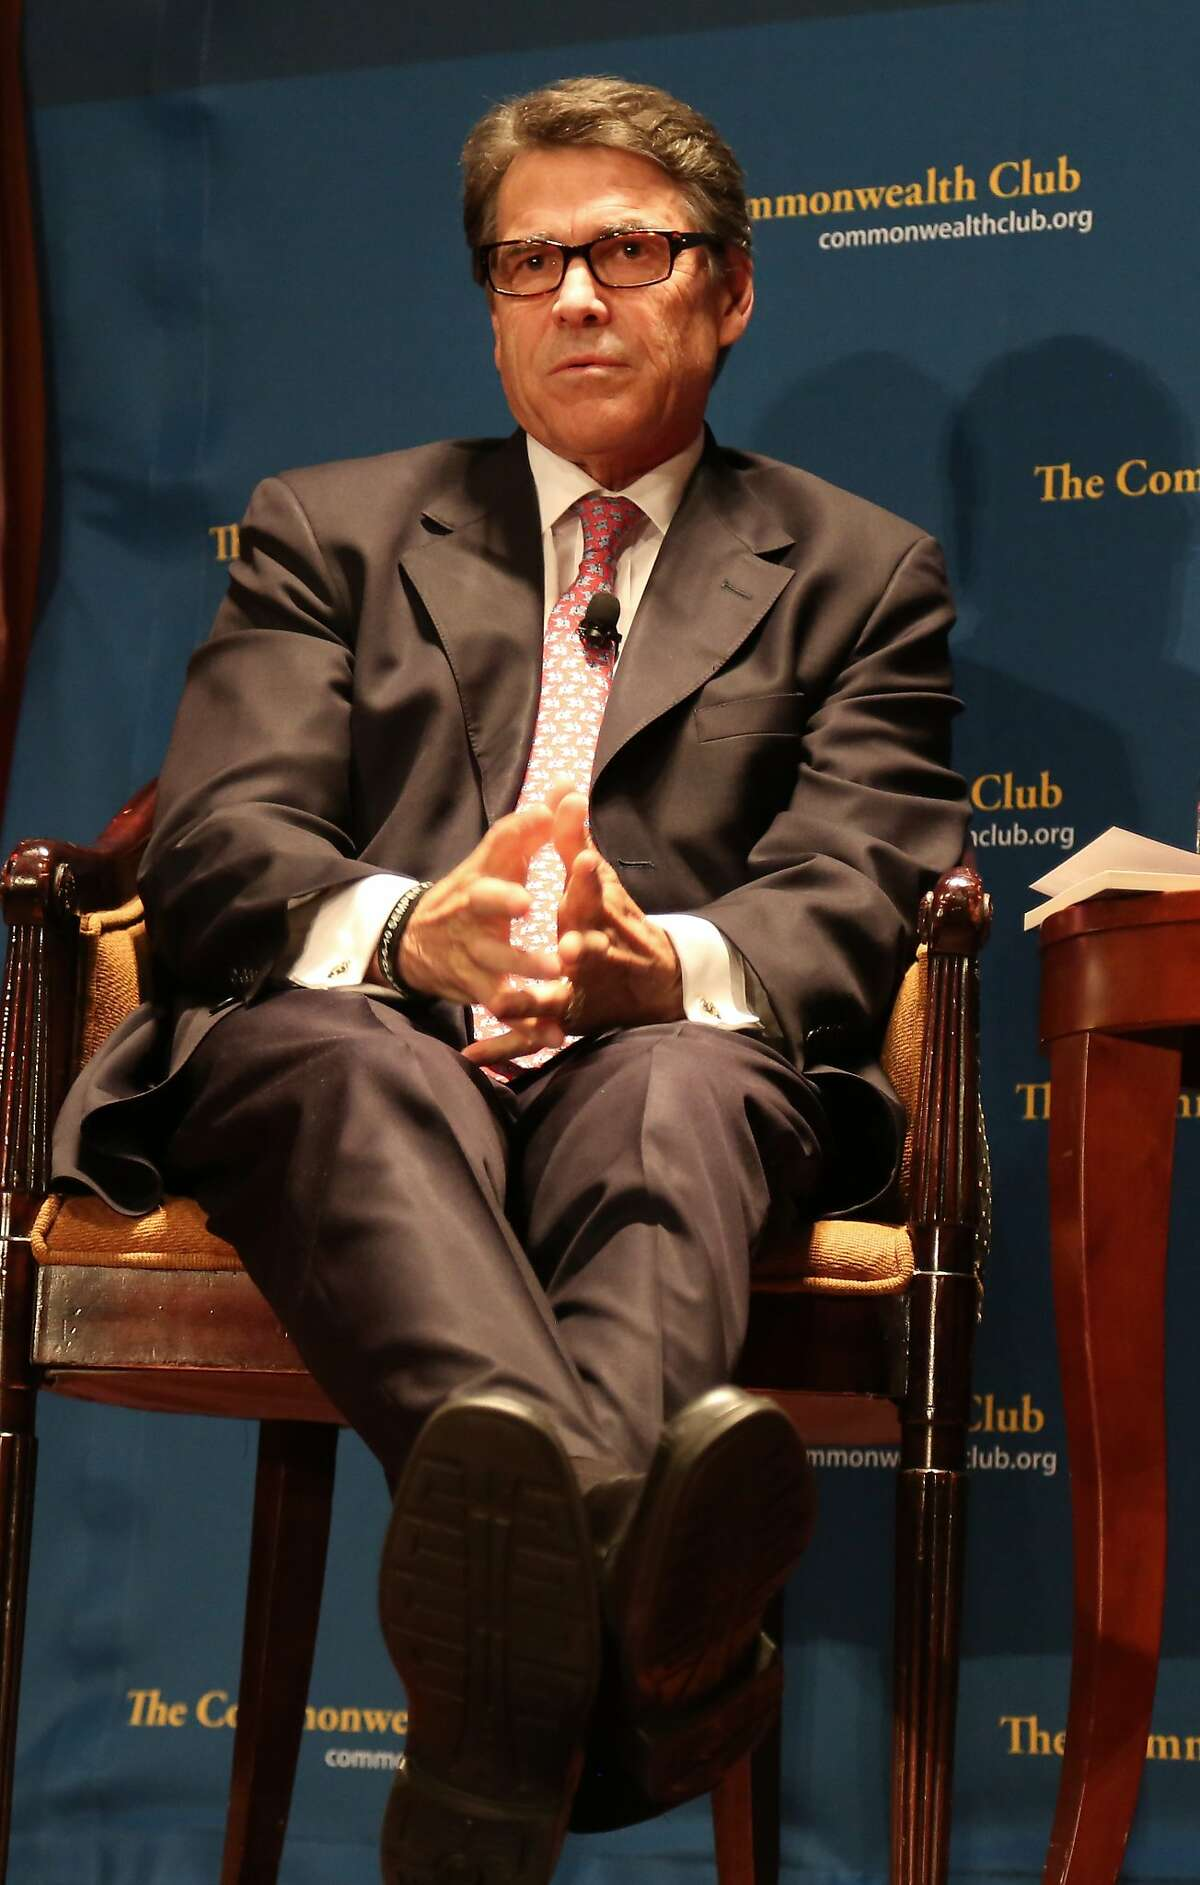 Texas Gov. Rick Perry relaxes during an event with the Commonwealth Club of California at the Intercontinental Mark Hopkins Hotel on Wednesday, June 11, 2014 in San Francisco, Calif.